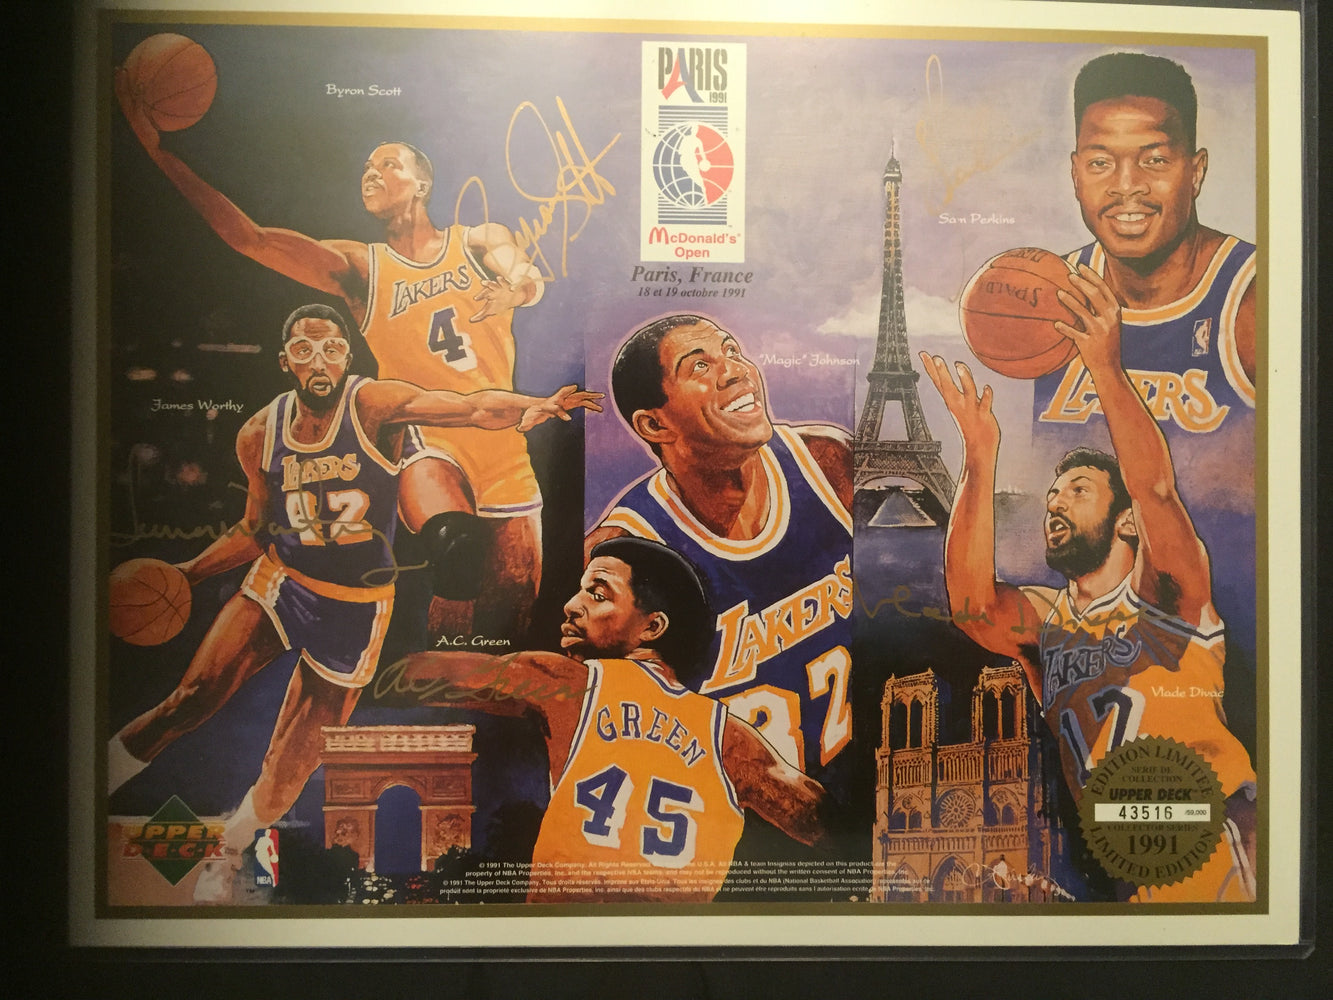 12 Days of Christmas Deal - Rare Autographed Los Angeles Lakers Upper Deck (UDA) Autographed 8 x 10! Signed By 5 Lakers Legends!